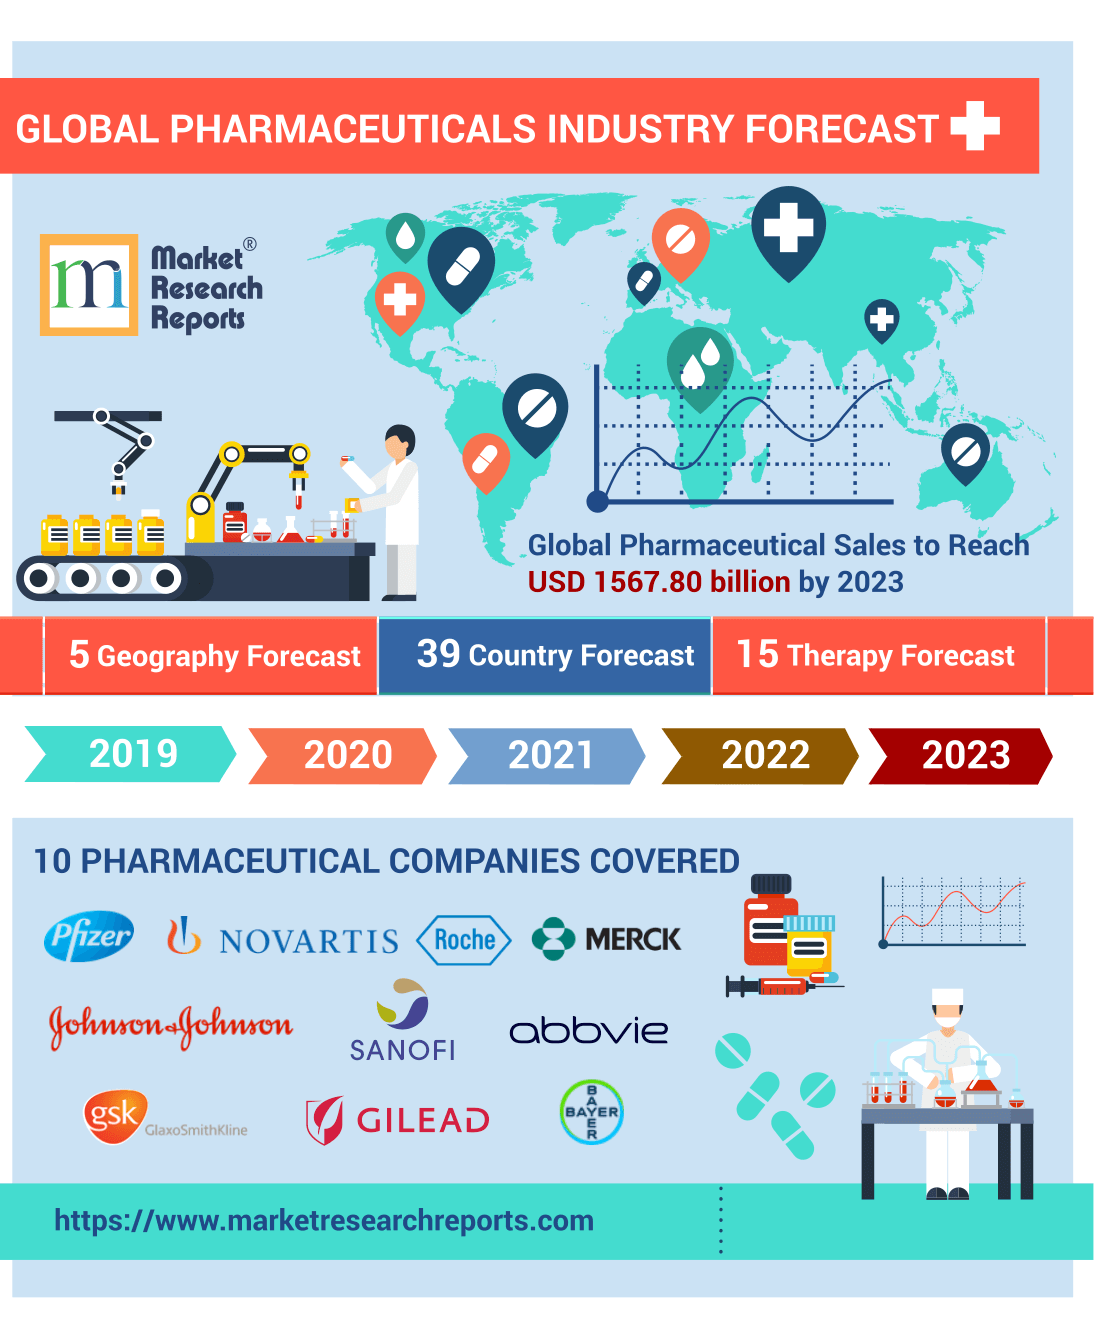 Global Pharmaceuticals Industry Forecast: Opportunities